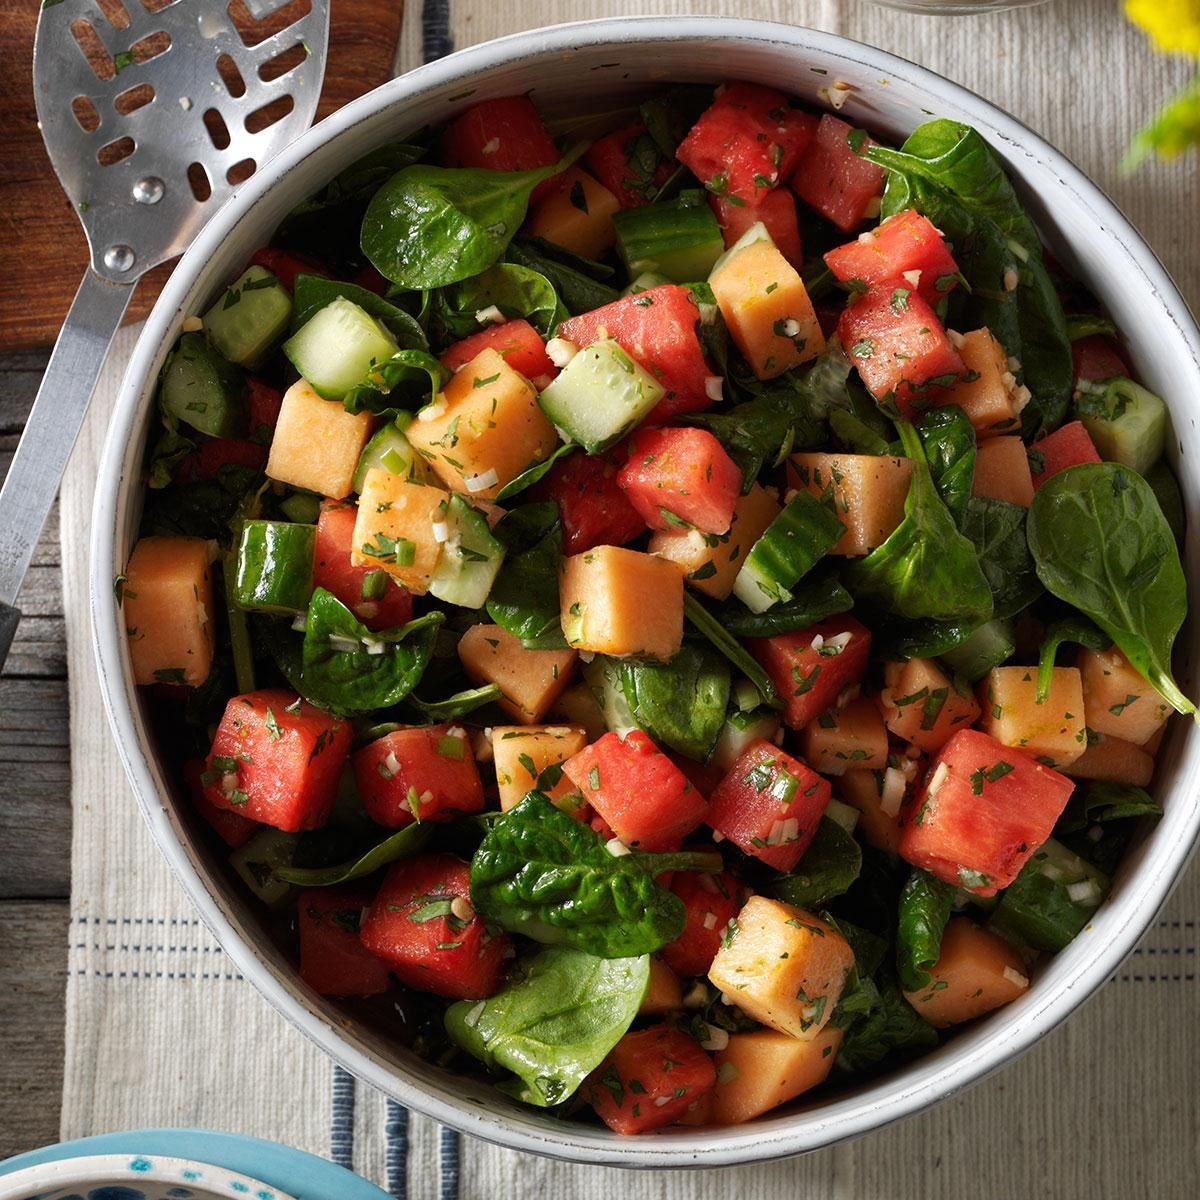 Watermelon and Spinach Salad